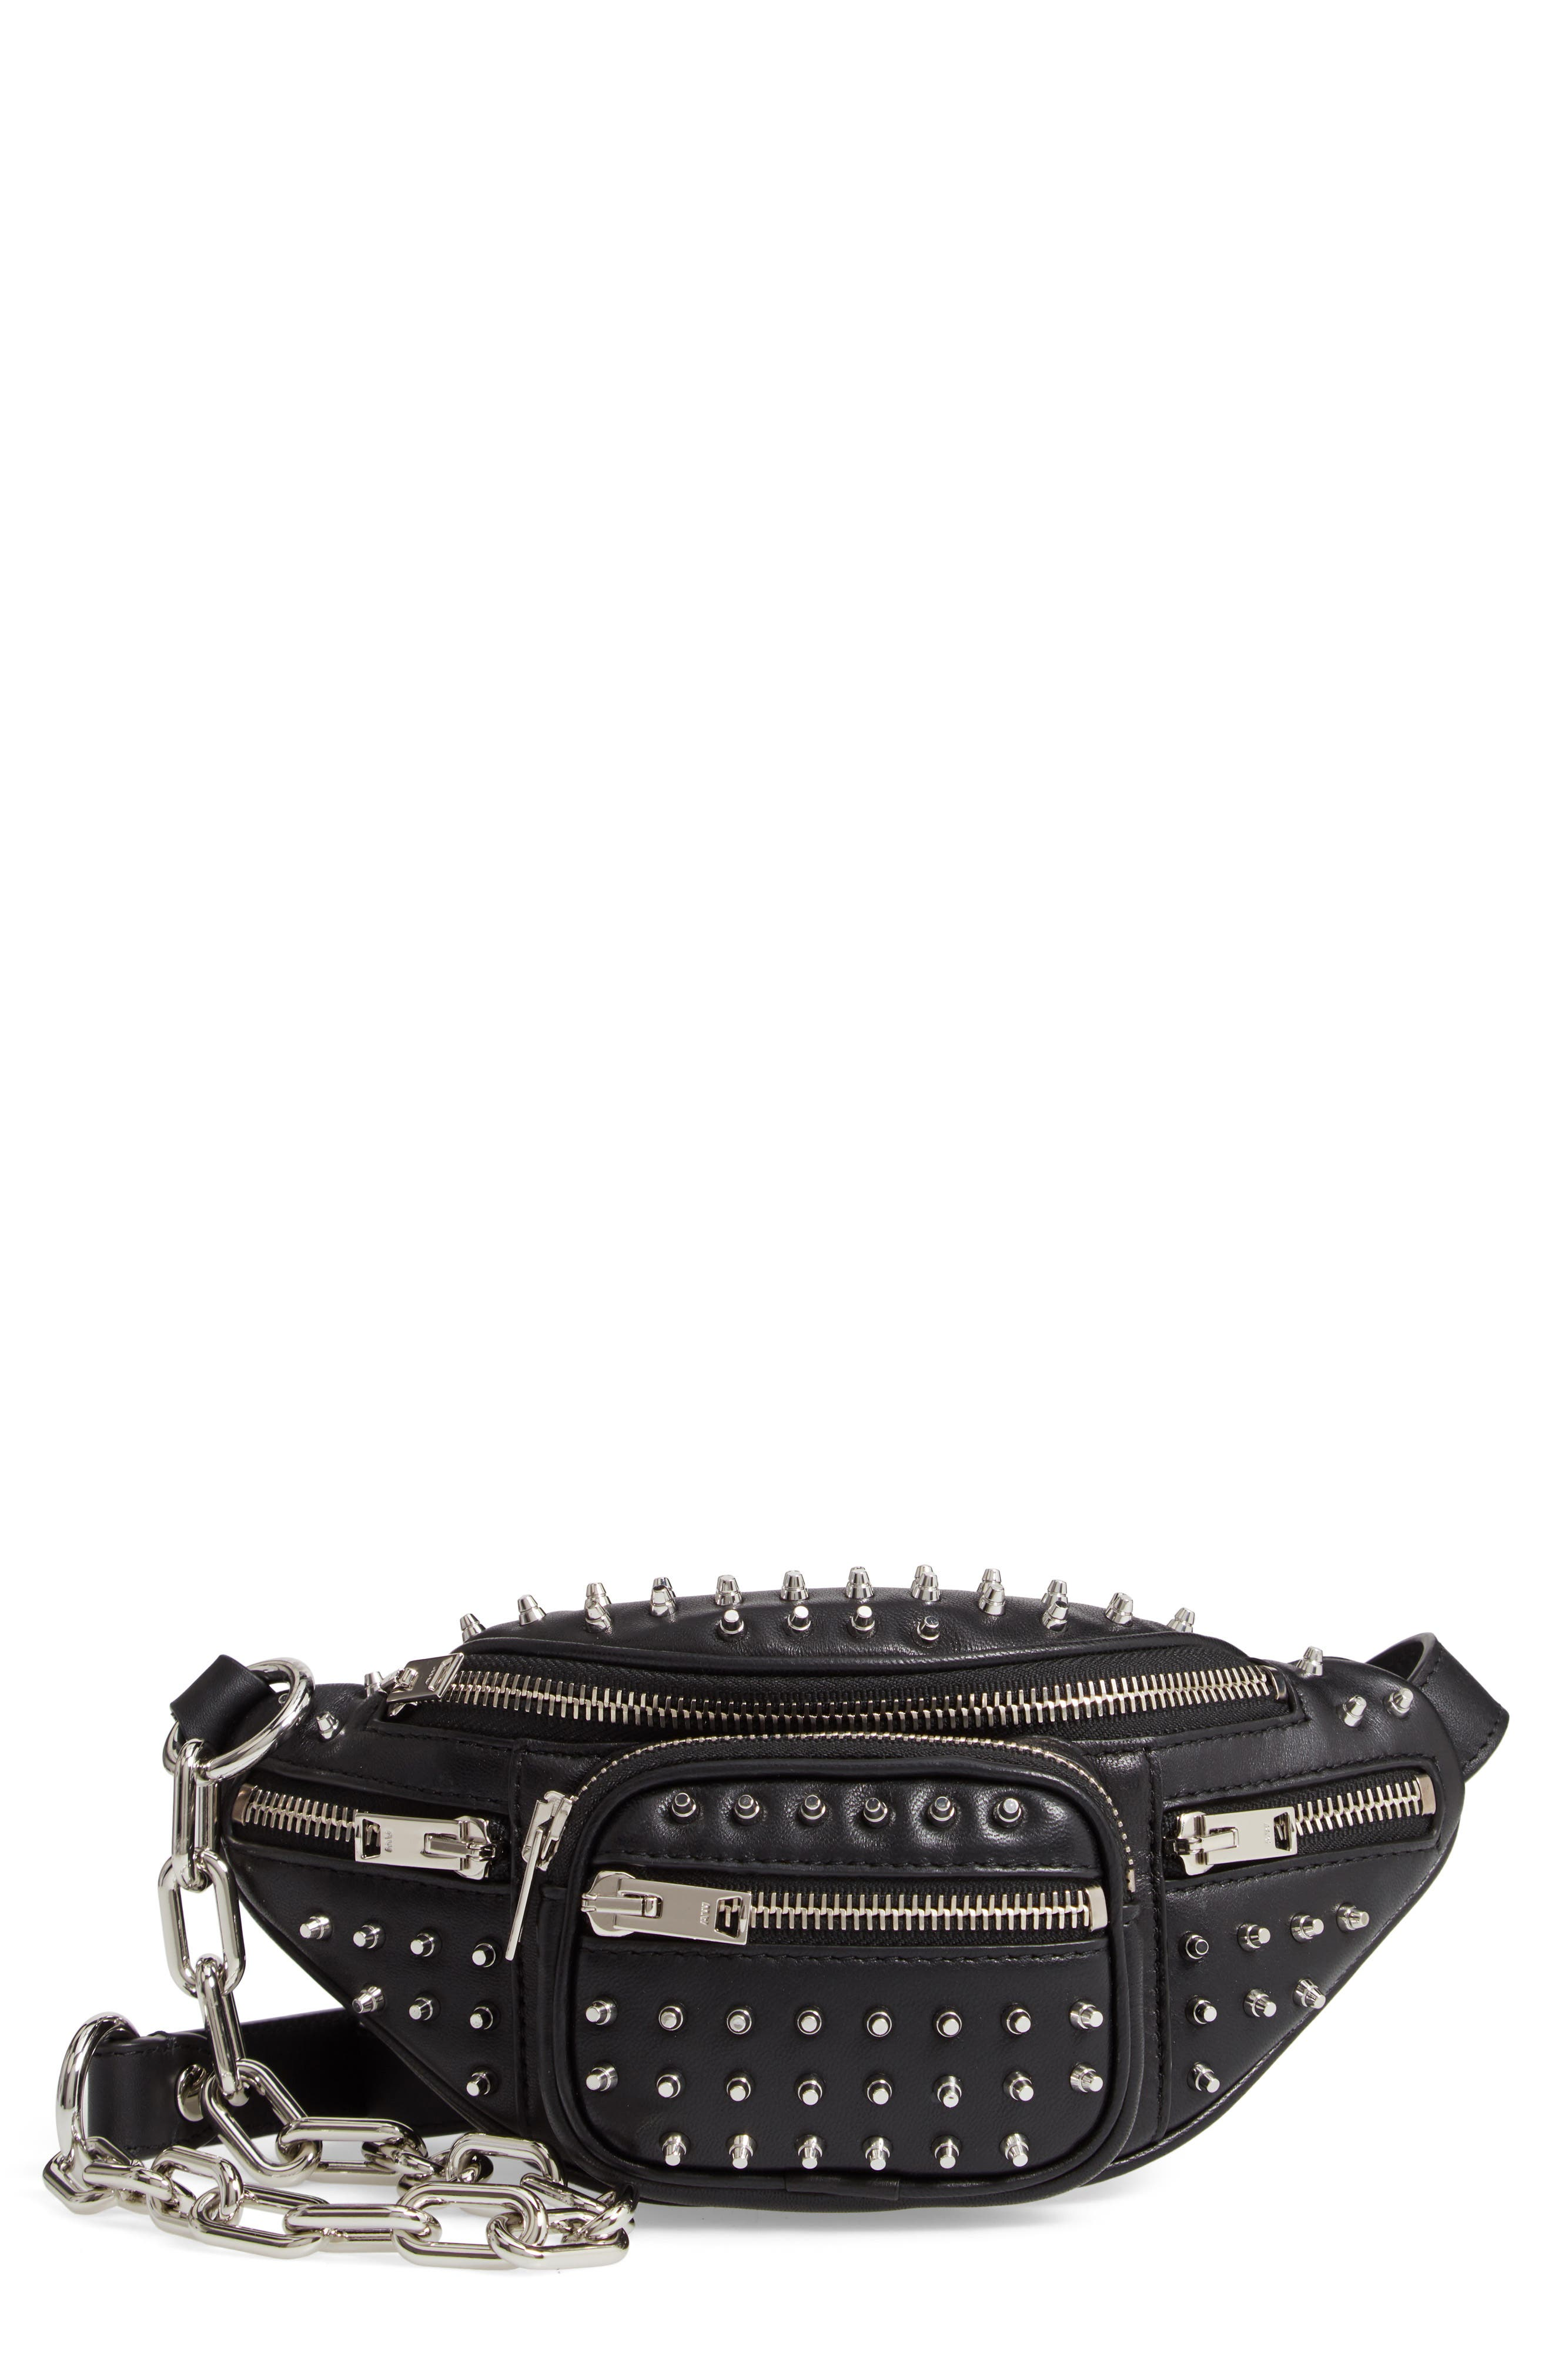 Attica Studded Lambskin Leather Fanny Pack,                             Main thumbnail 1, color,                             BLACK